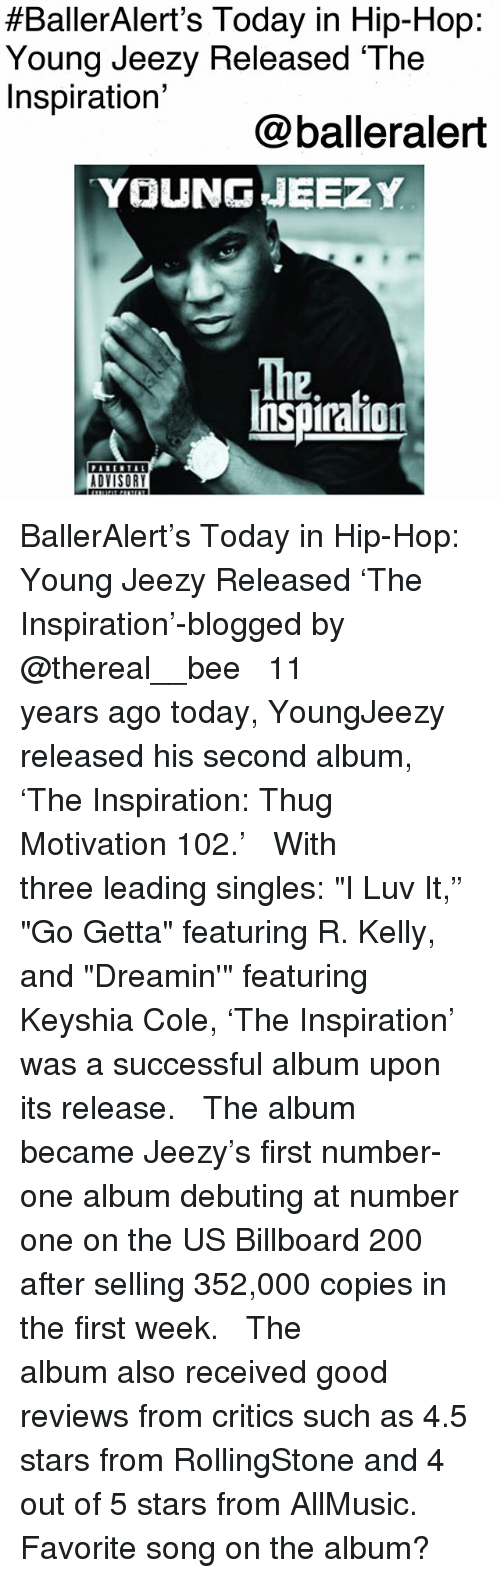 """Bailey Jay, Billboard, and Young Jeezy:  #BallerAlert's Today in Hip-Hop:  Young Jeezy Released 'The  Inspiration'  @balleralert  YOUNGJEEZ Y  The  Inspiraion  12  ADVISORY BallerAlert's Today in Hip-Hop: Young Jeezy Released 'The Inspiration'-blogged by @thereal__bee ⠀⠀⠀⠀⠀⠀⠀⠀⠀ ⠀⠀ 11 years ago today, YoungJeezy released his second album, 'The Inspiration: Thug Motivation 102.' ⠀⠀⠀⠀⠀⠀⠀⠀⠀ ⠀⠀ With three leading singles: """"I Luv It,"""" """"Go Getta"""" featuring R. Kelly, and """"Dreamin'"""" featuring Keyshia Cole, 'The Inspiration' was a successful album upon its release. ⠀⠀⠀⠀⠀⠀⠀⠀⠀ ⠀⠀ The album became Jeezy's first number-one album debuting at number one on the US Billboard 200 after selling 352,000 copies in the first week. ⠀⠀⠀⠀⠀⠀⠀⠀⠀ ⠀⠀ The album also received good reviews from critics such as 4.5 stars from RollingStone and 4 out of 5 stars from AllMusic. Favorite song on the album?"""